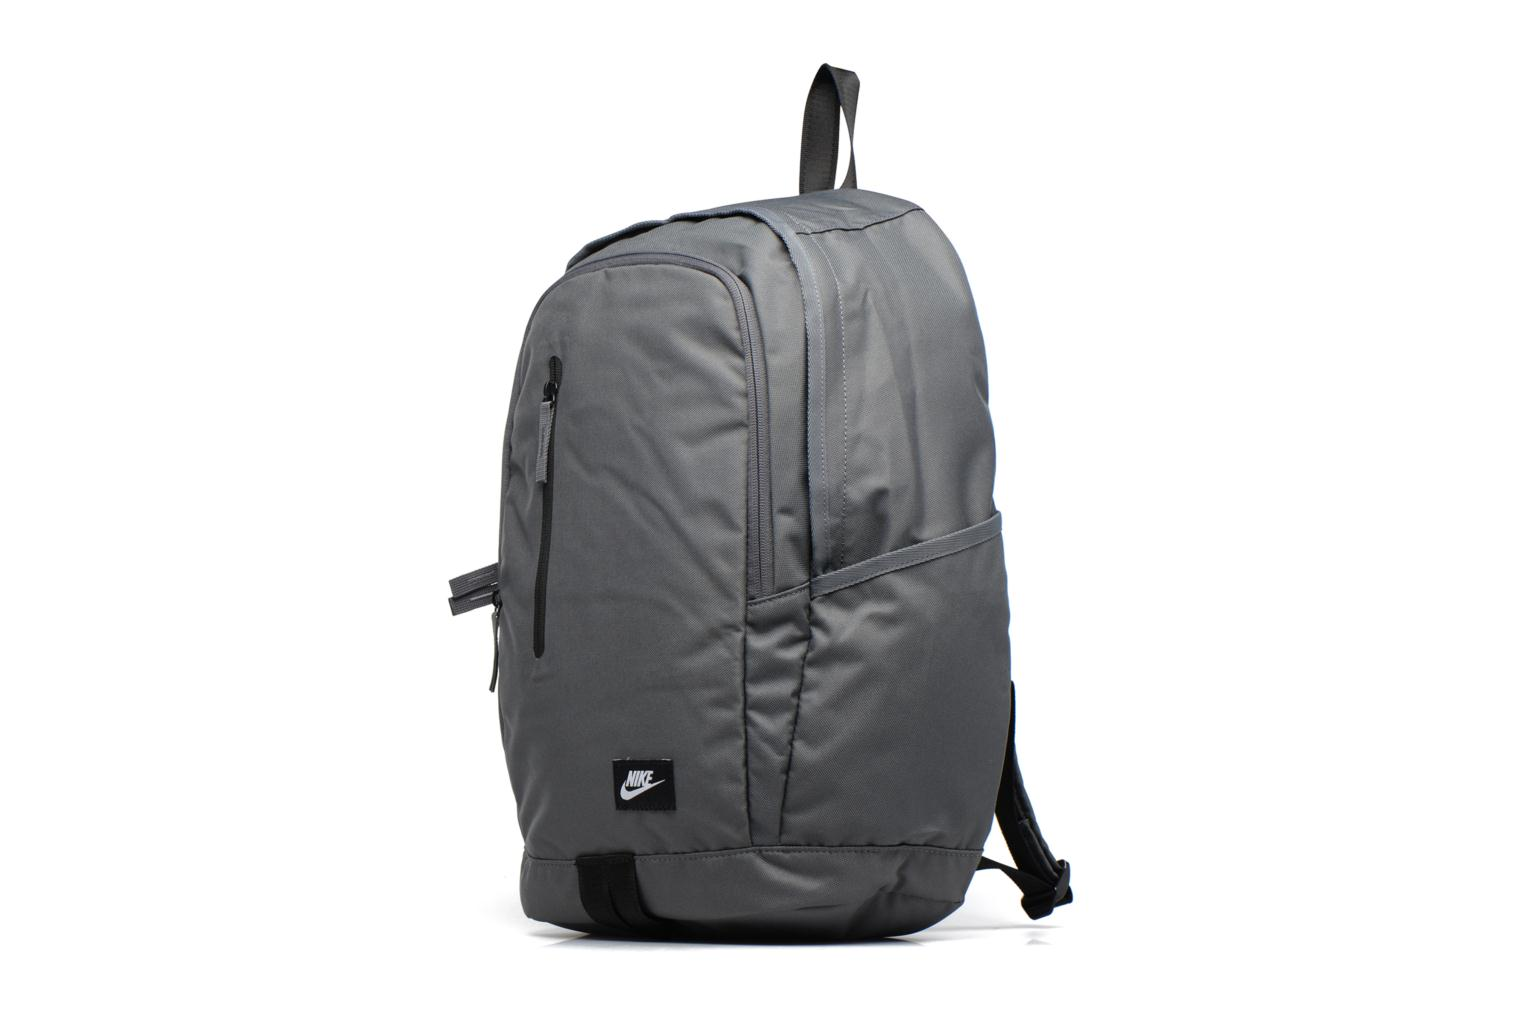 Nike Soleday Backpack S Dark Grey/Black/White